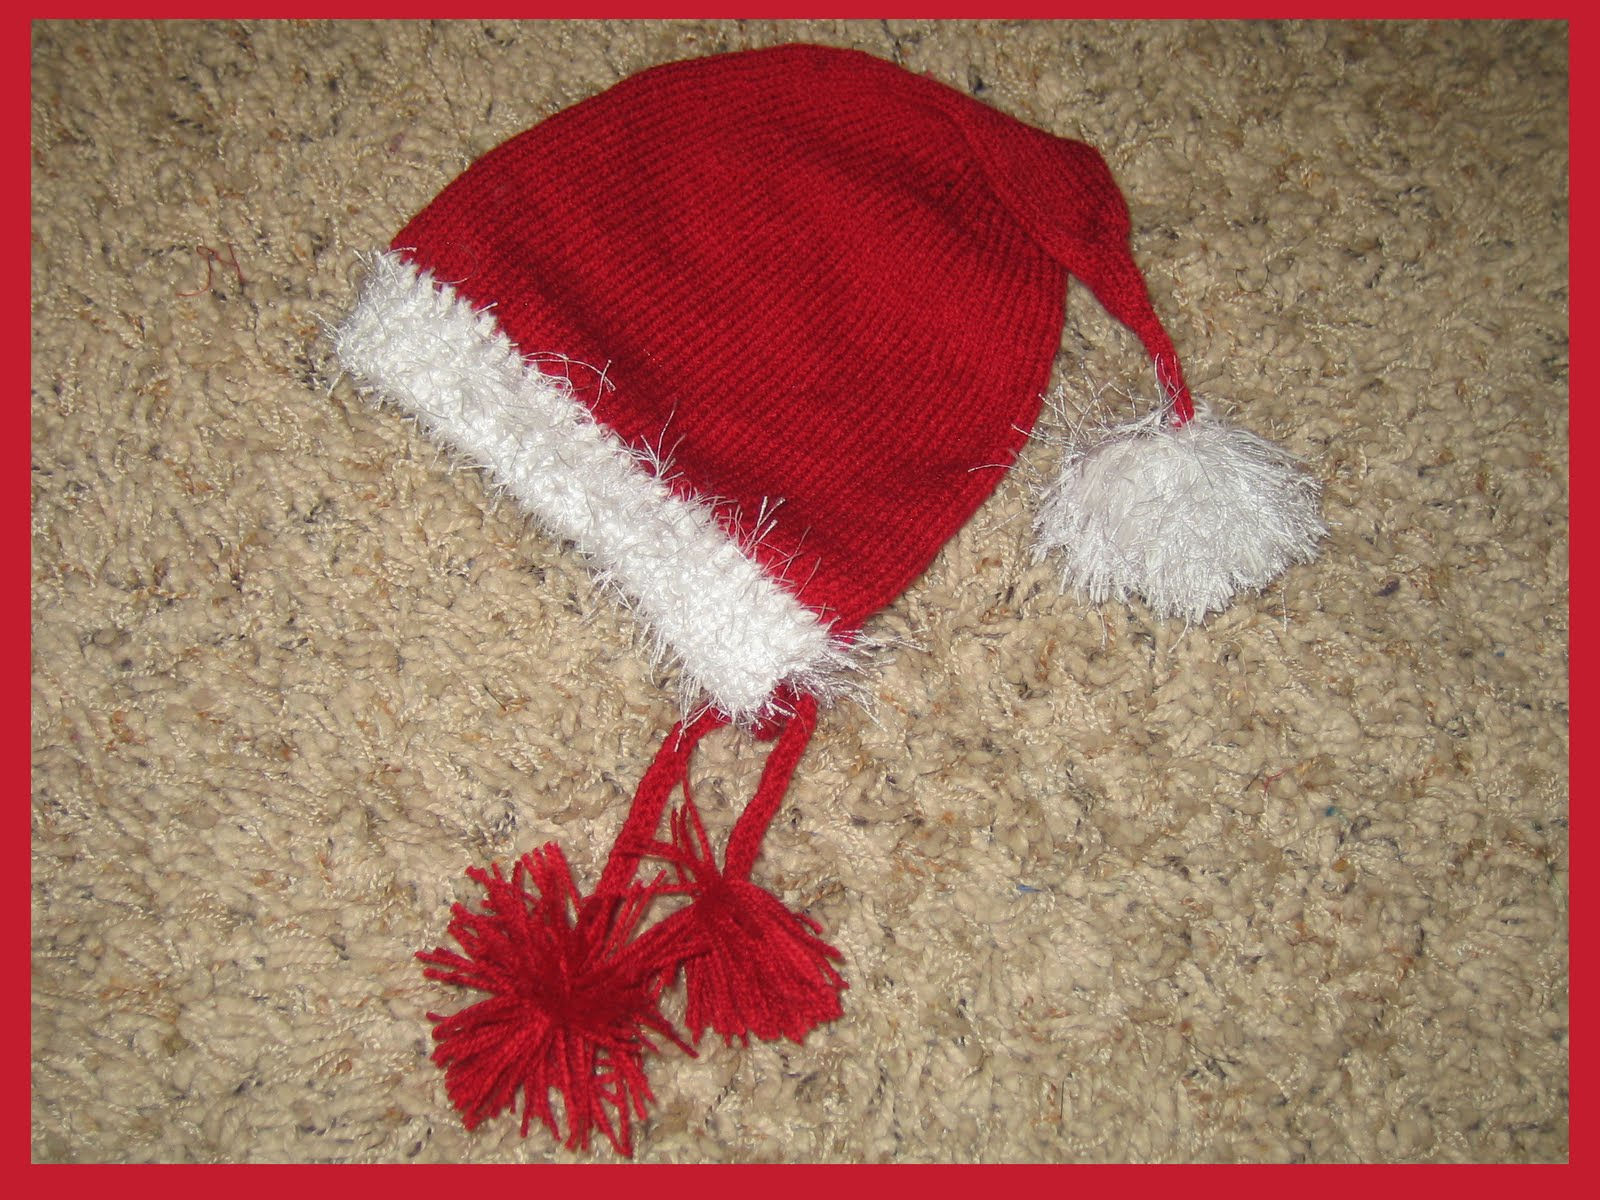 378fe0609 Marzipanknits: Free machine knit pattern for a baby Santa hat